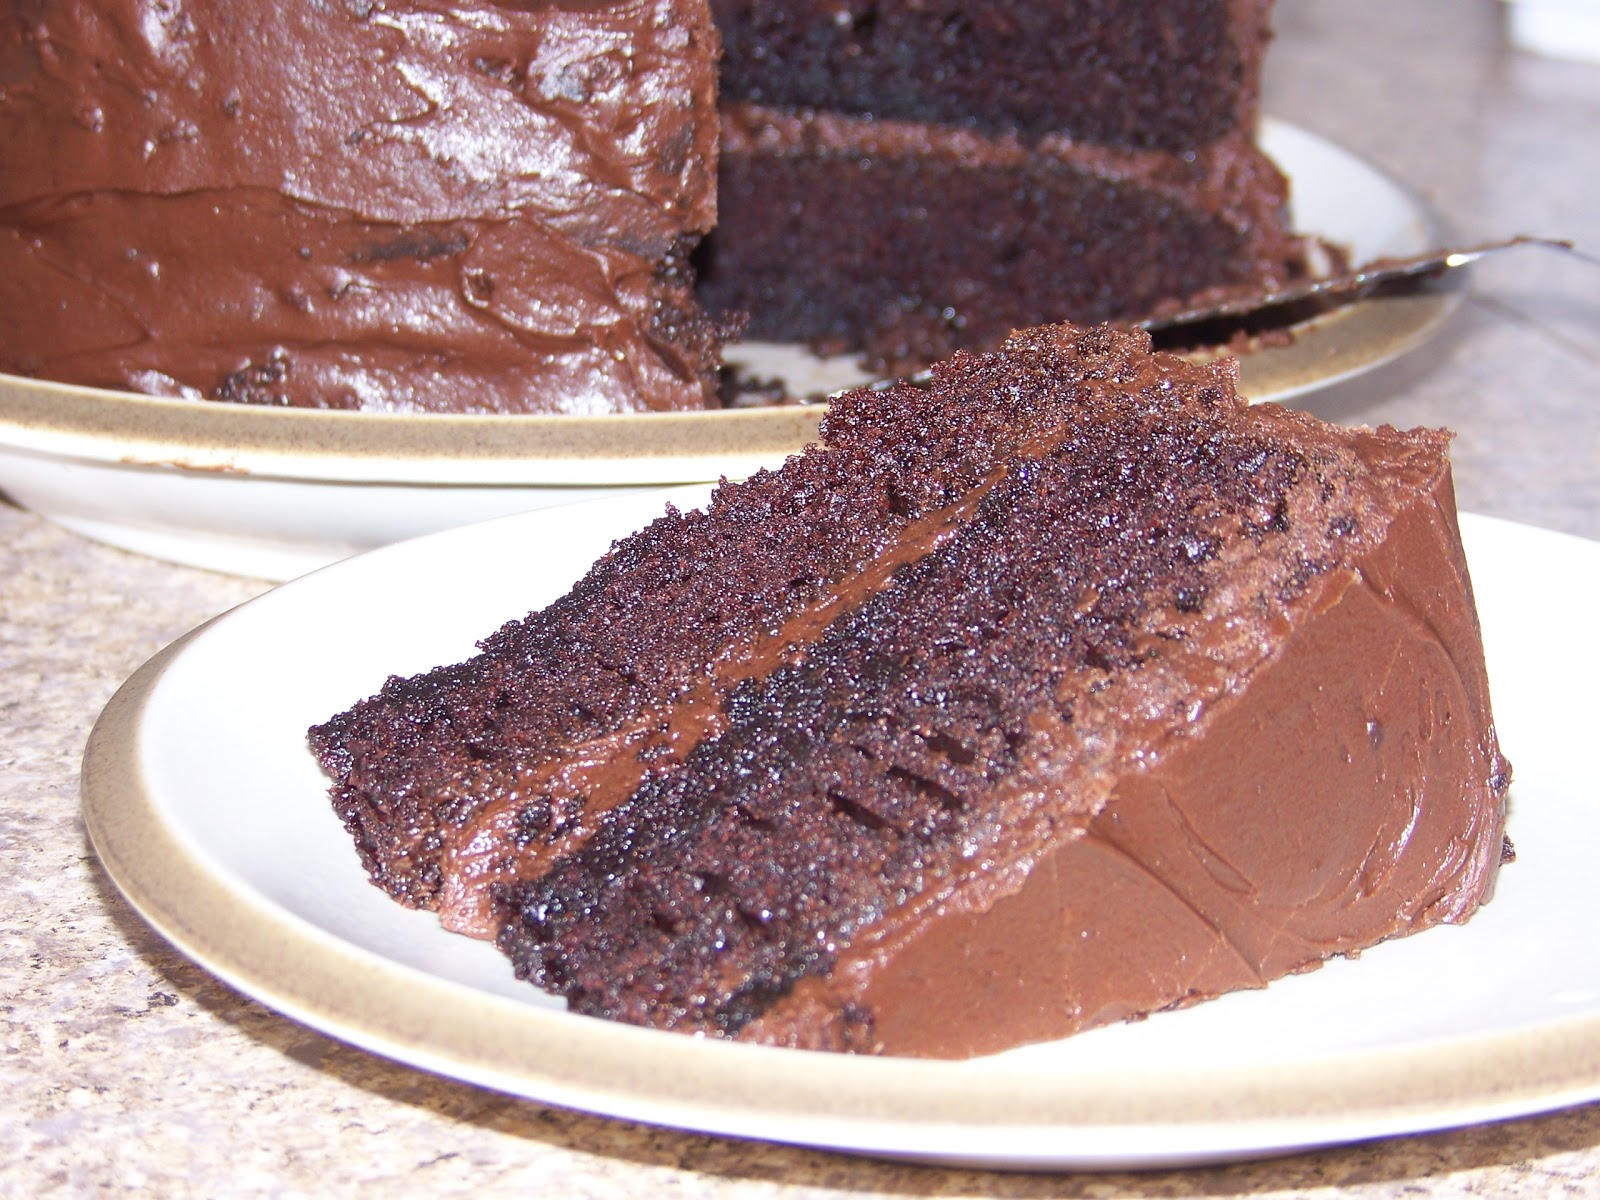 Hershey's Perfectly Chocolate Cake With Chocolate Frosting ...